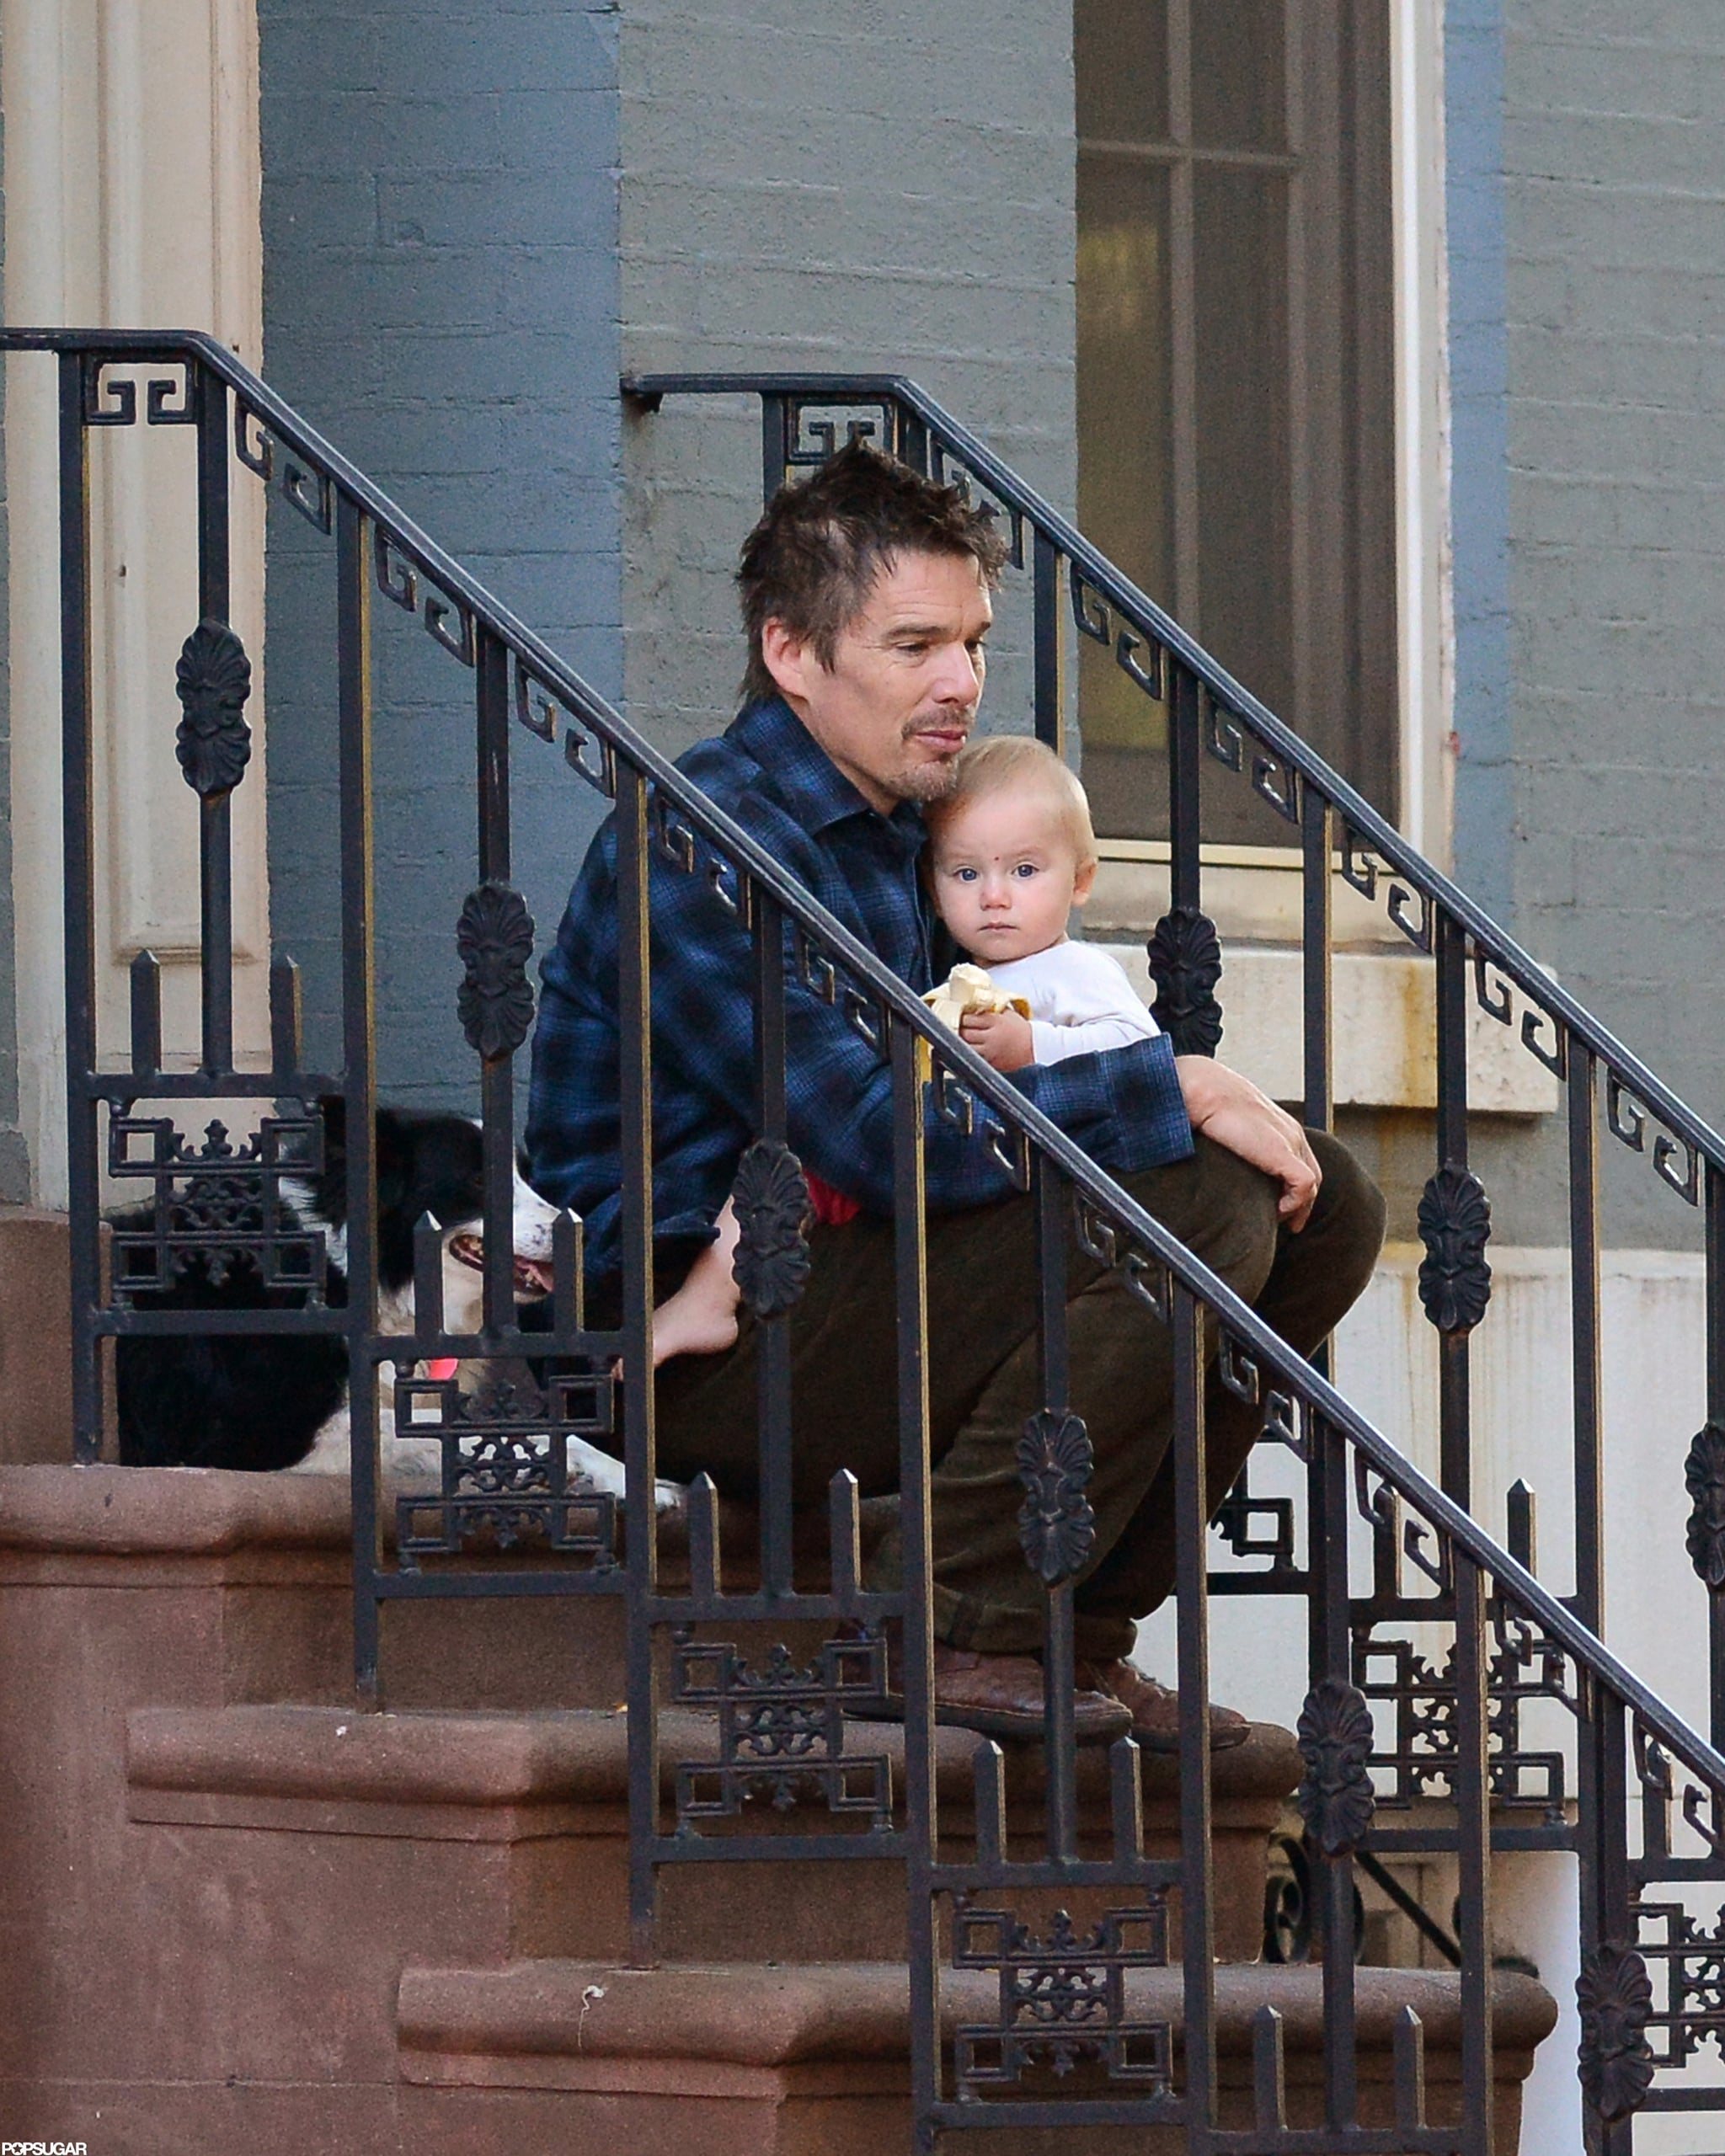 Ethan Hawke was outside with his youngest child in NYC.